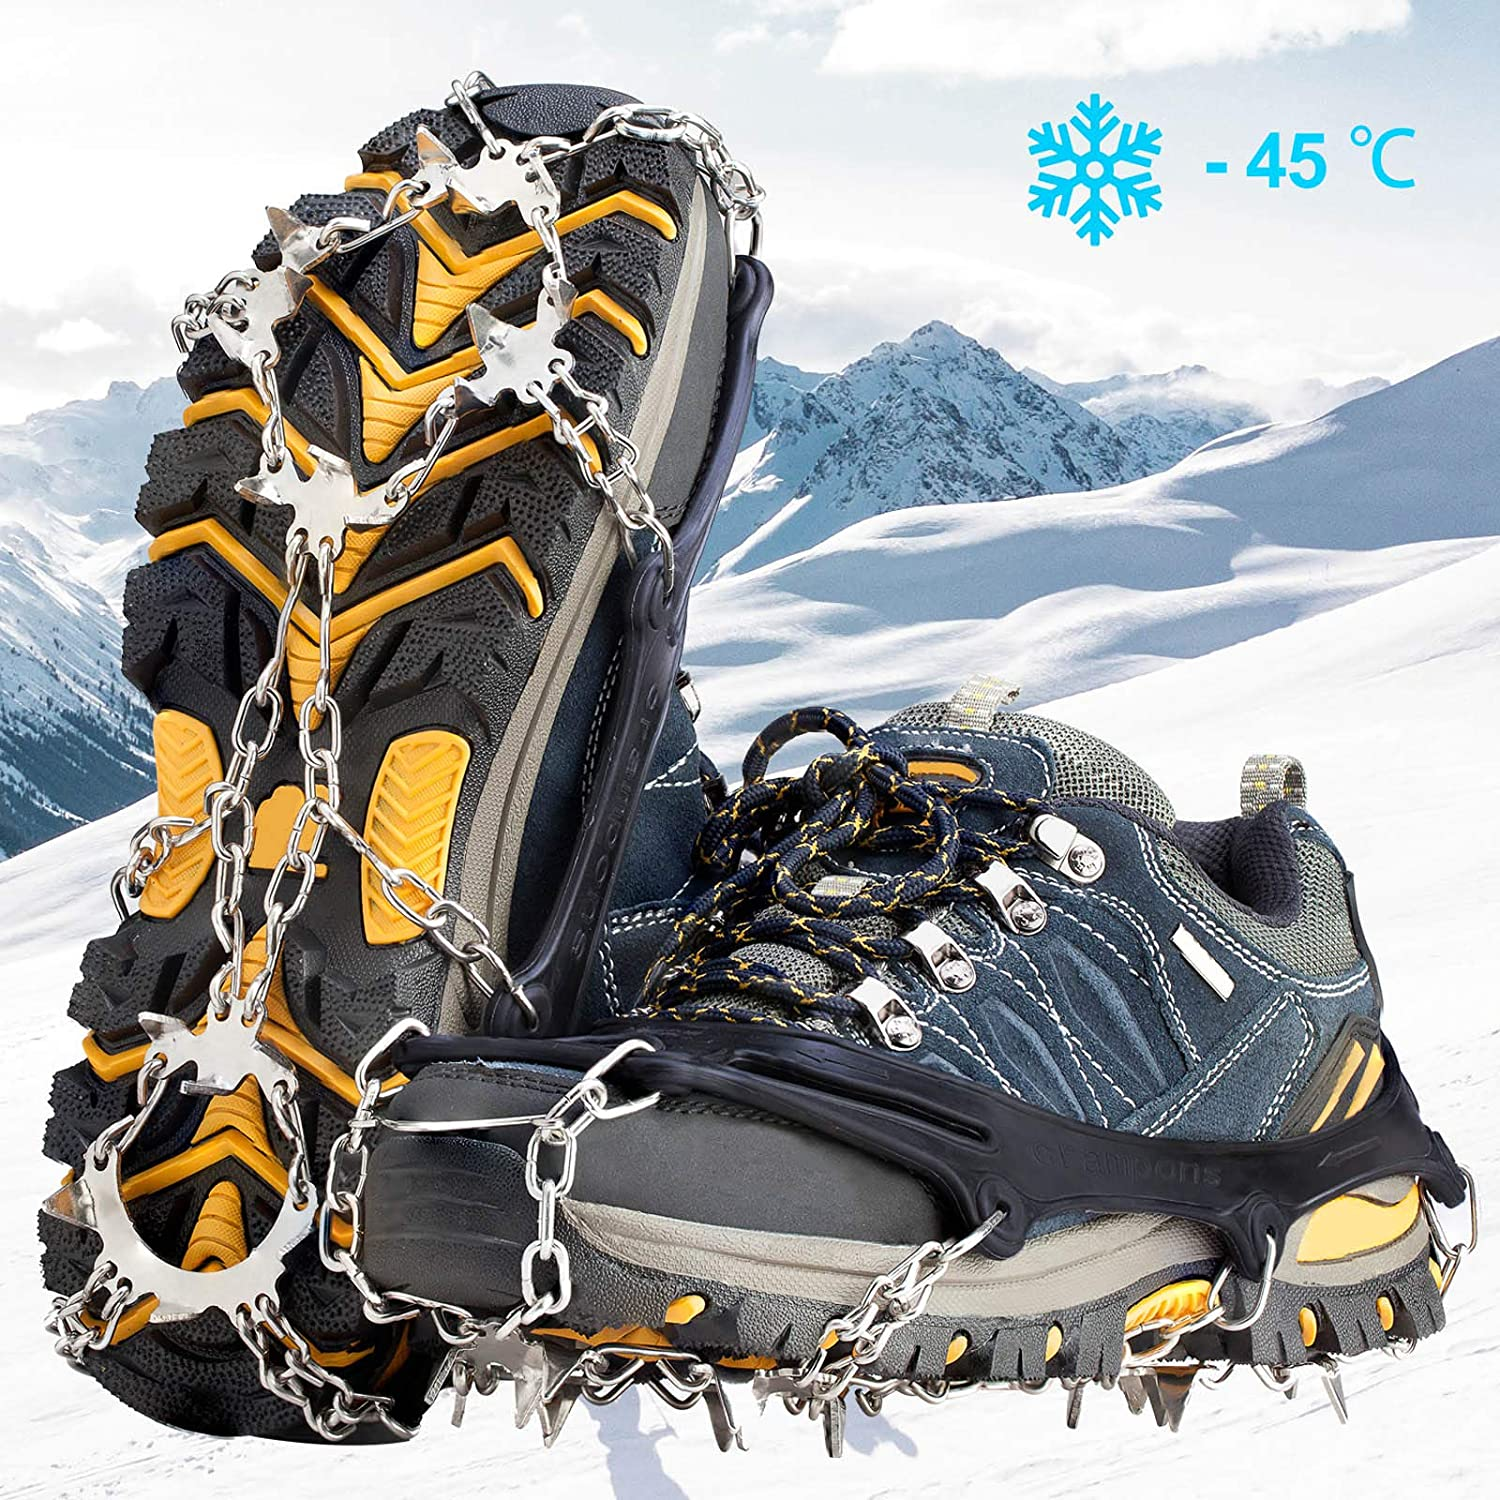 Everpertuk Ice Snow Grips Crampons Ice Cleats Spike Shoes Ice Traction Cleats Anti Slip 19 Studs Stainless Steel Spikes Non-slip Shoe Cover for Jogging Climbing Hiking Moutaineering